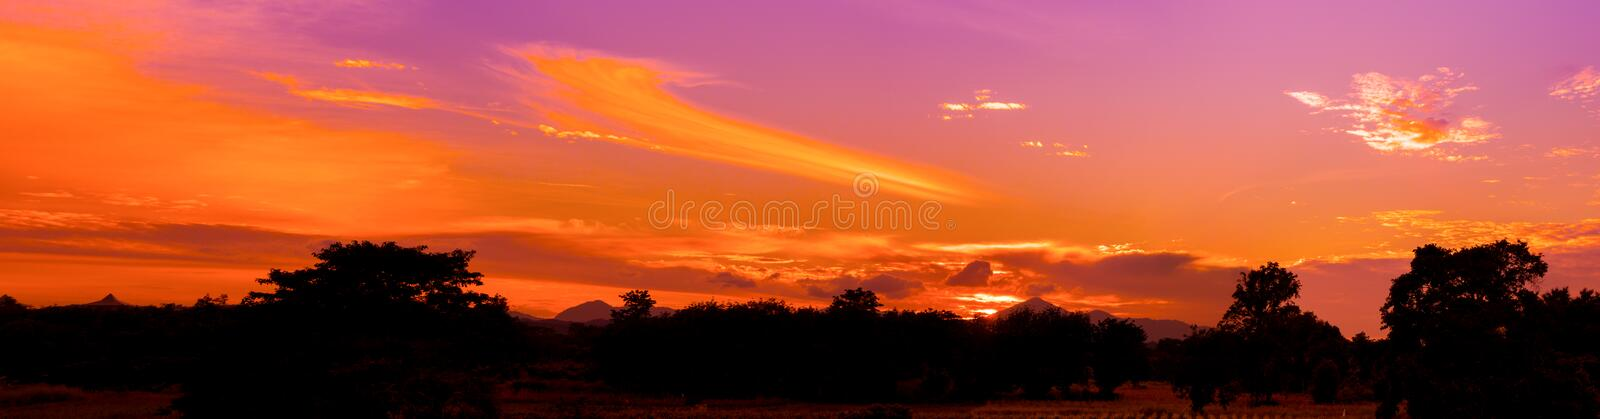 Panorama dramatic sunset in sky beautiful colorful which has sun light orange landscape silhouette tree woodland twilight time wit royalty free stock image